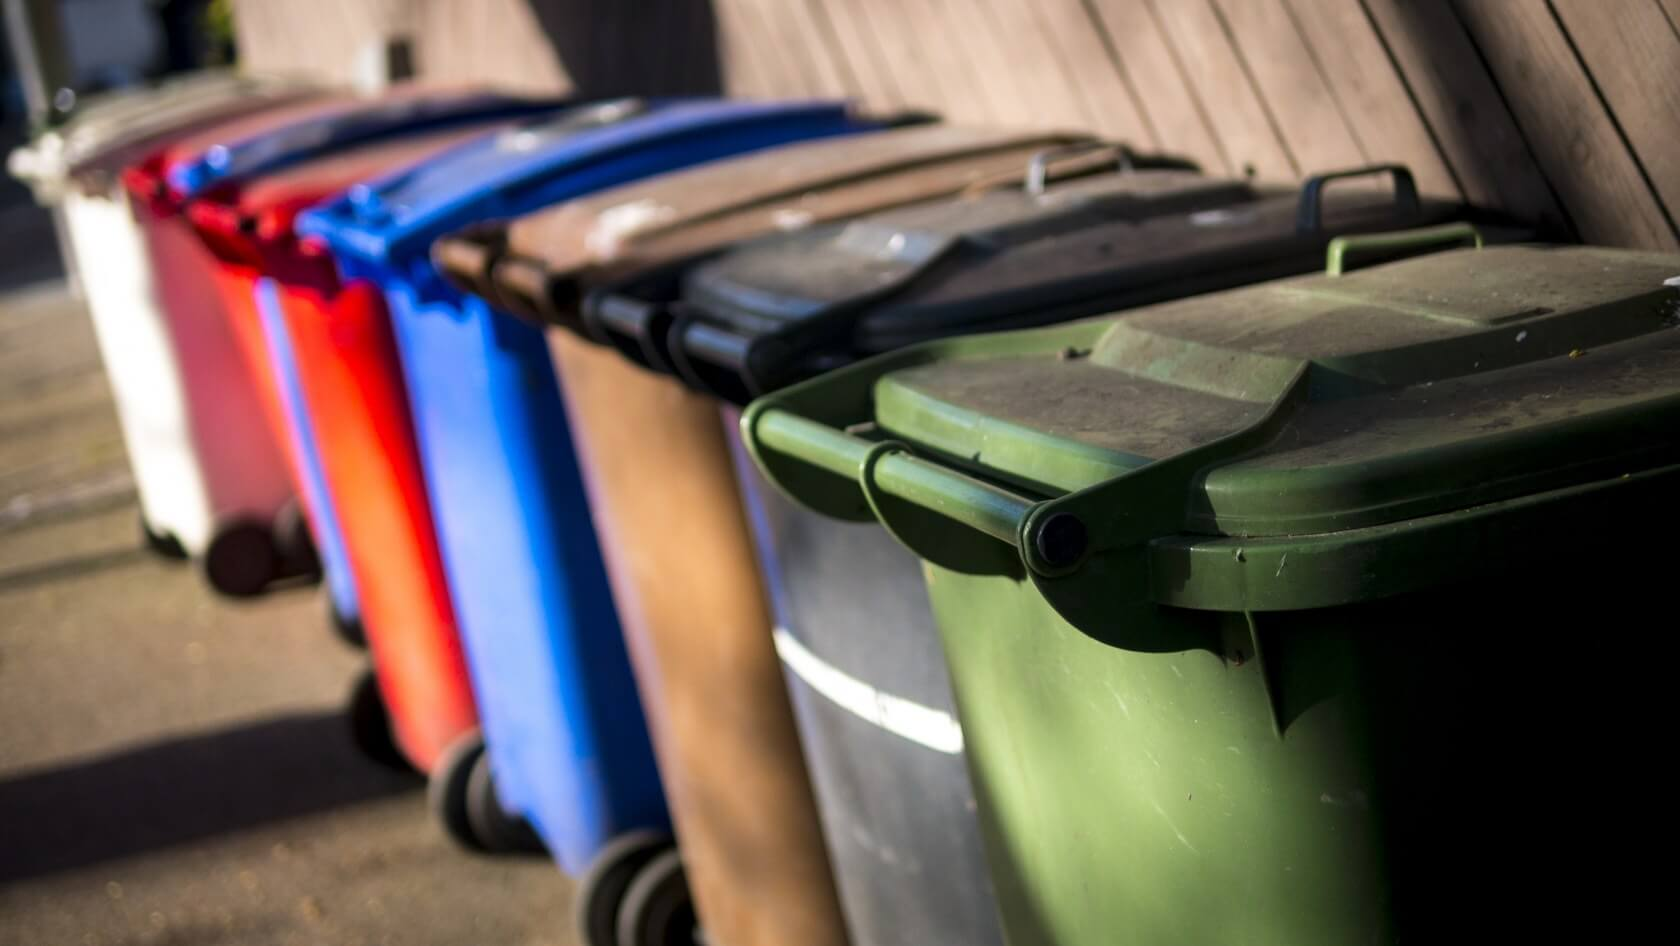 Researchers create new plastic type that could enable near-lossless recycling